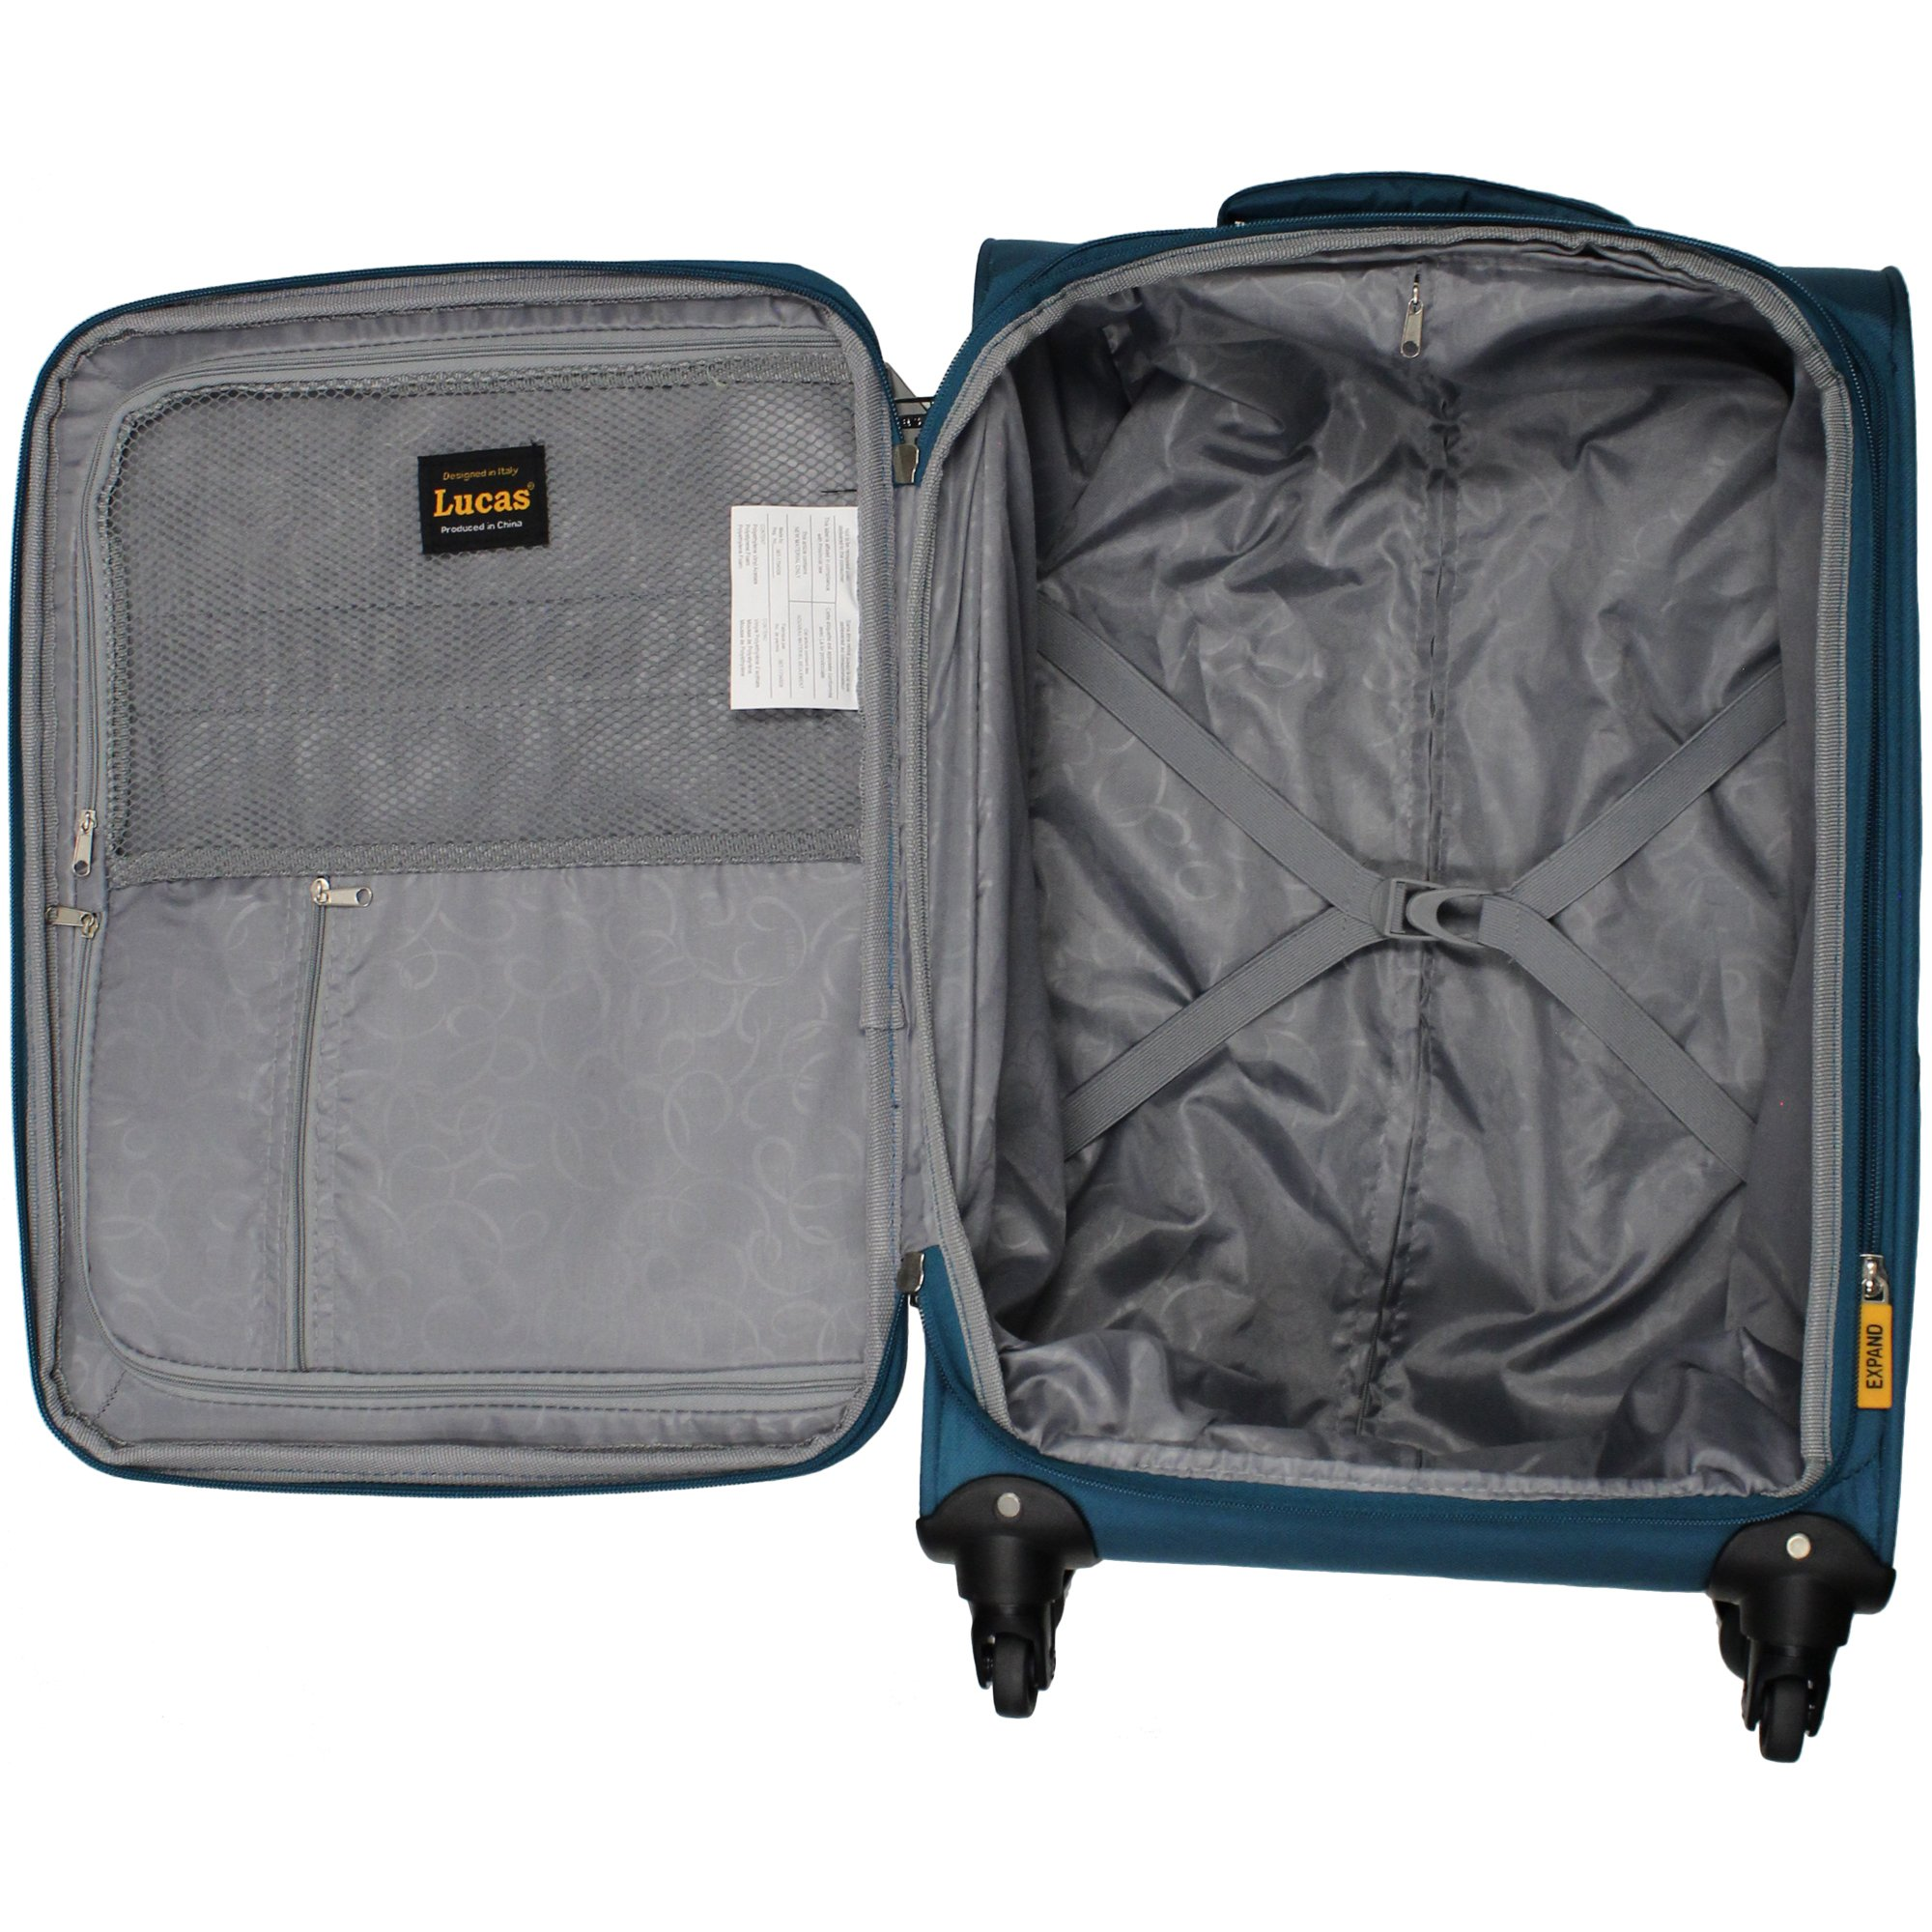 Lucas Luggage Ultra Lightweight Carry On 20 inch Expandable Suitcase With Spinner Wheels (20in, Teal) by Lucas (Image #6)